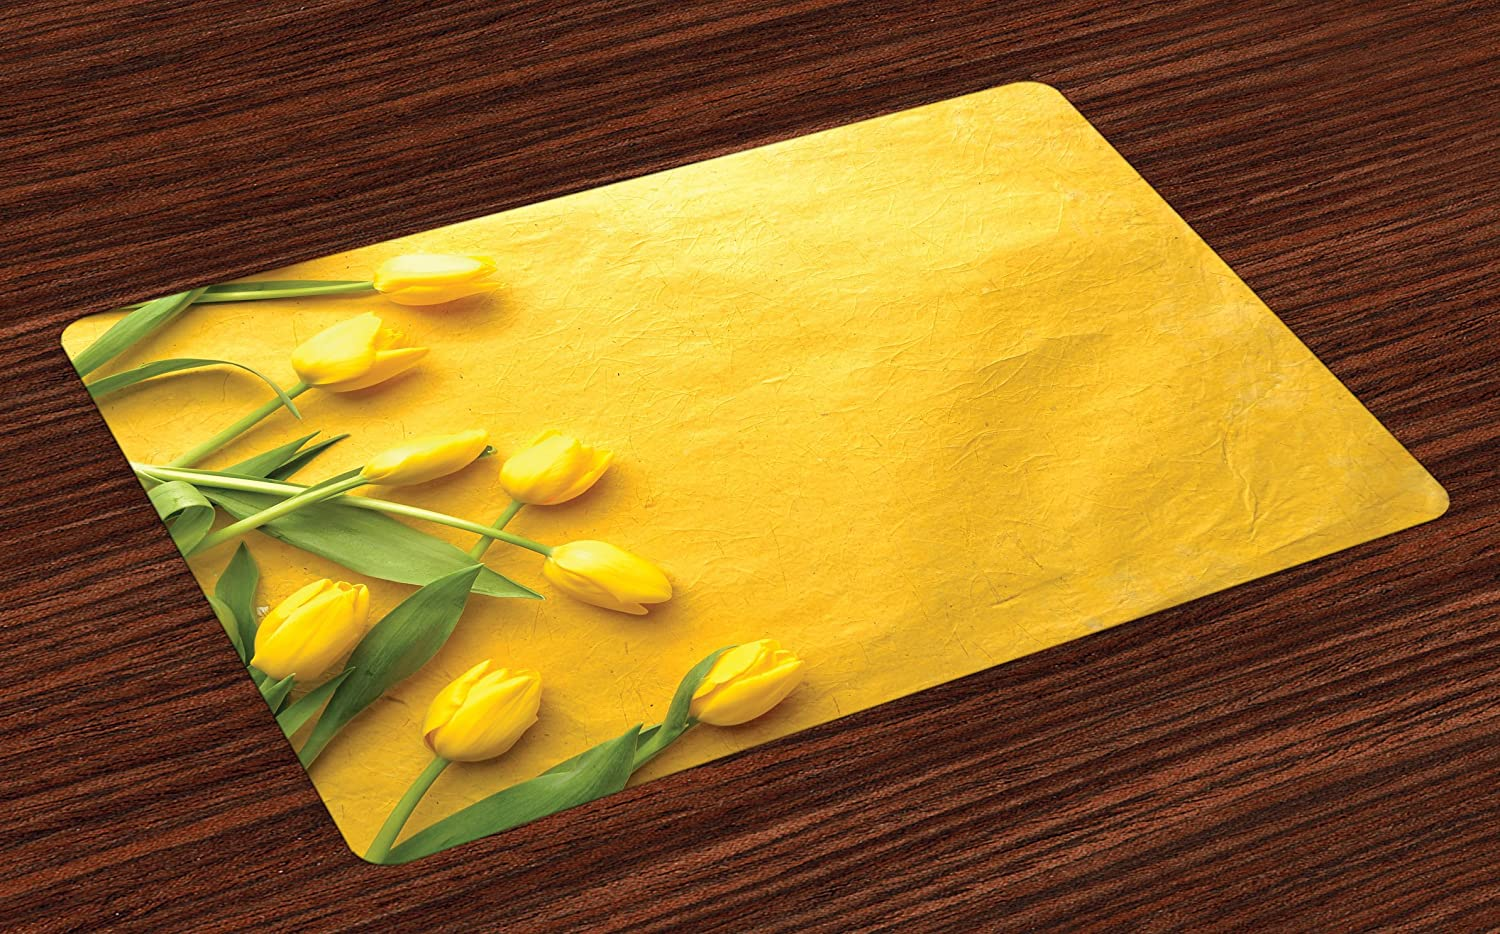 Ambesonne Yellow Place Mats Set of 4, Danish Dutch Tulips on Colored Wall Garden Floral Love Lily Herbs Artful Print, Washable Fabric Placemats for Dining Room Kitchen Table Decor, Yellow Green